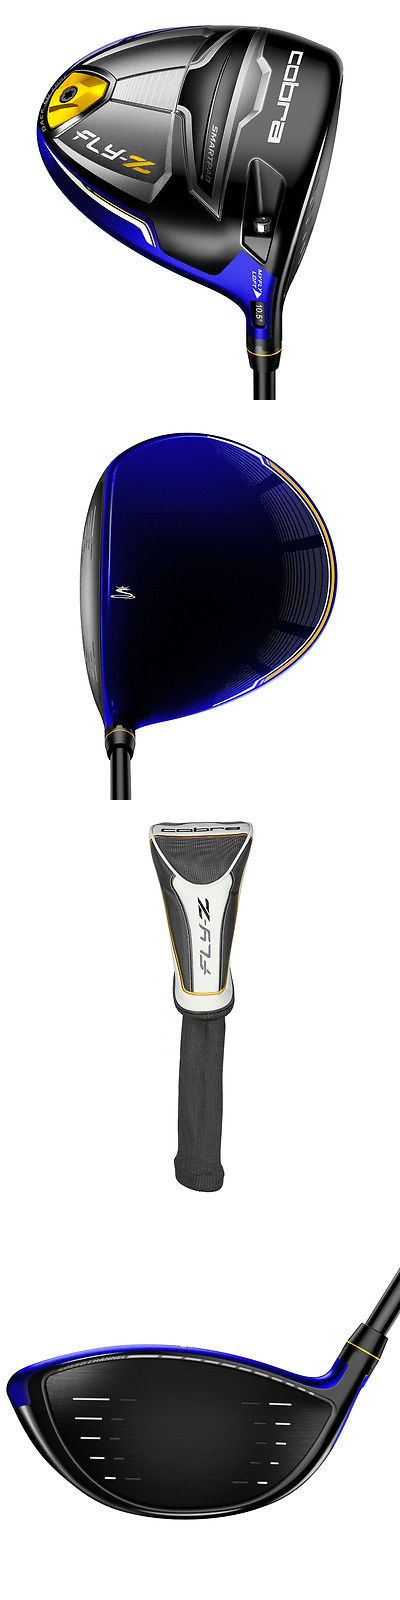 Golf Clubs 115280: New Cobra Golf Fly-Z Adjustable (9°-12°) Strong Blue Driver Regular Flex BUY IT NOW ONLY: $154.99